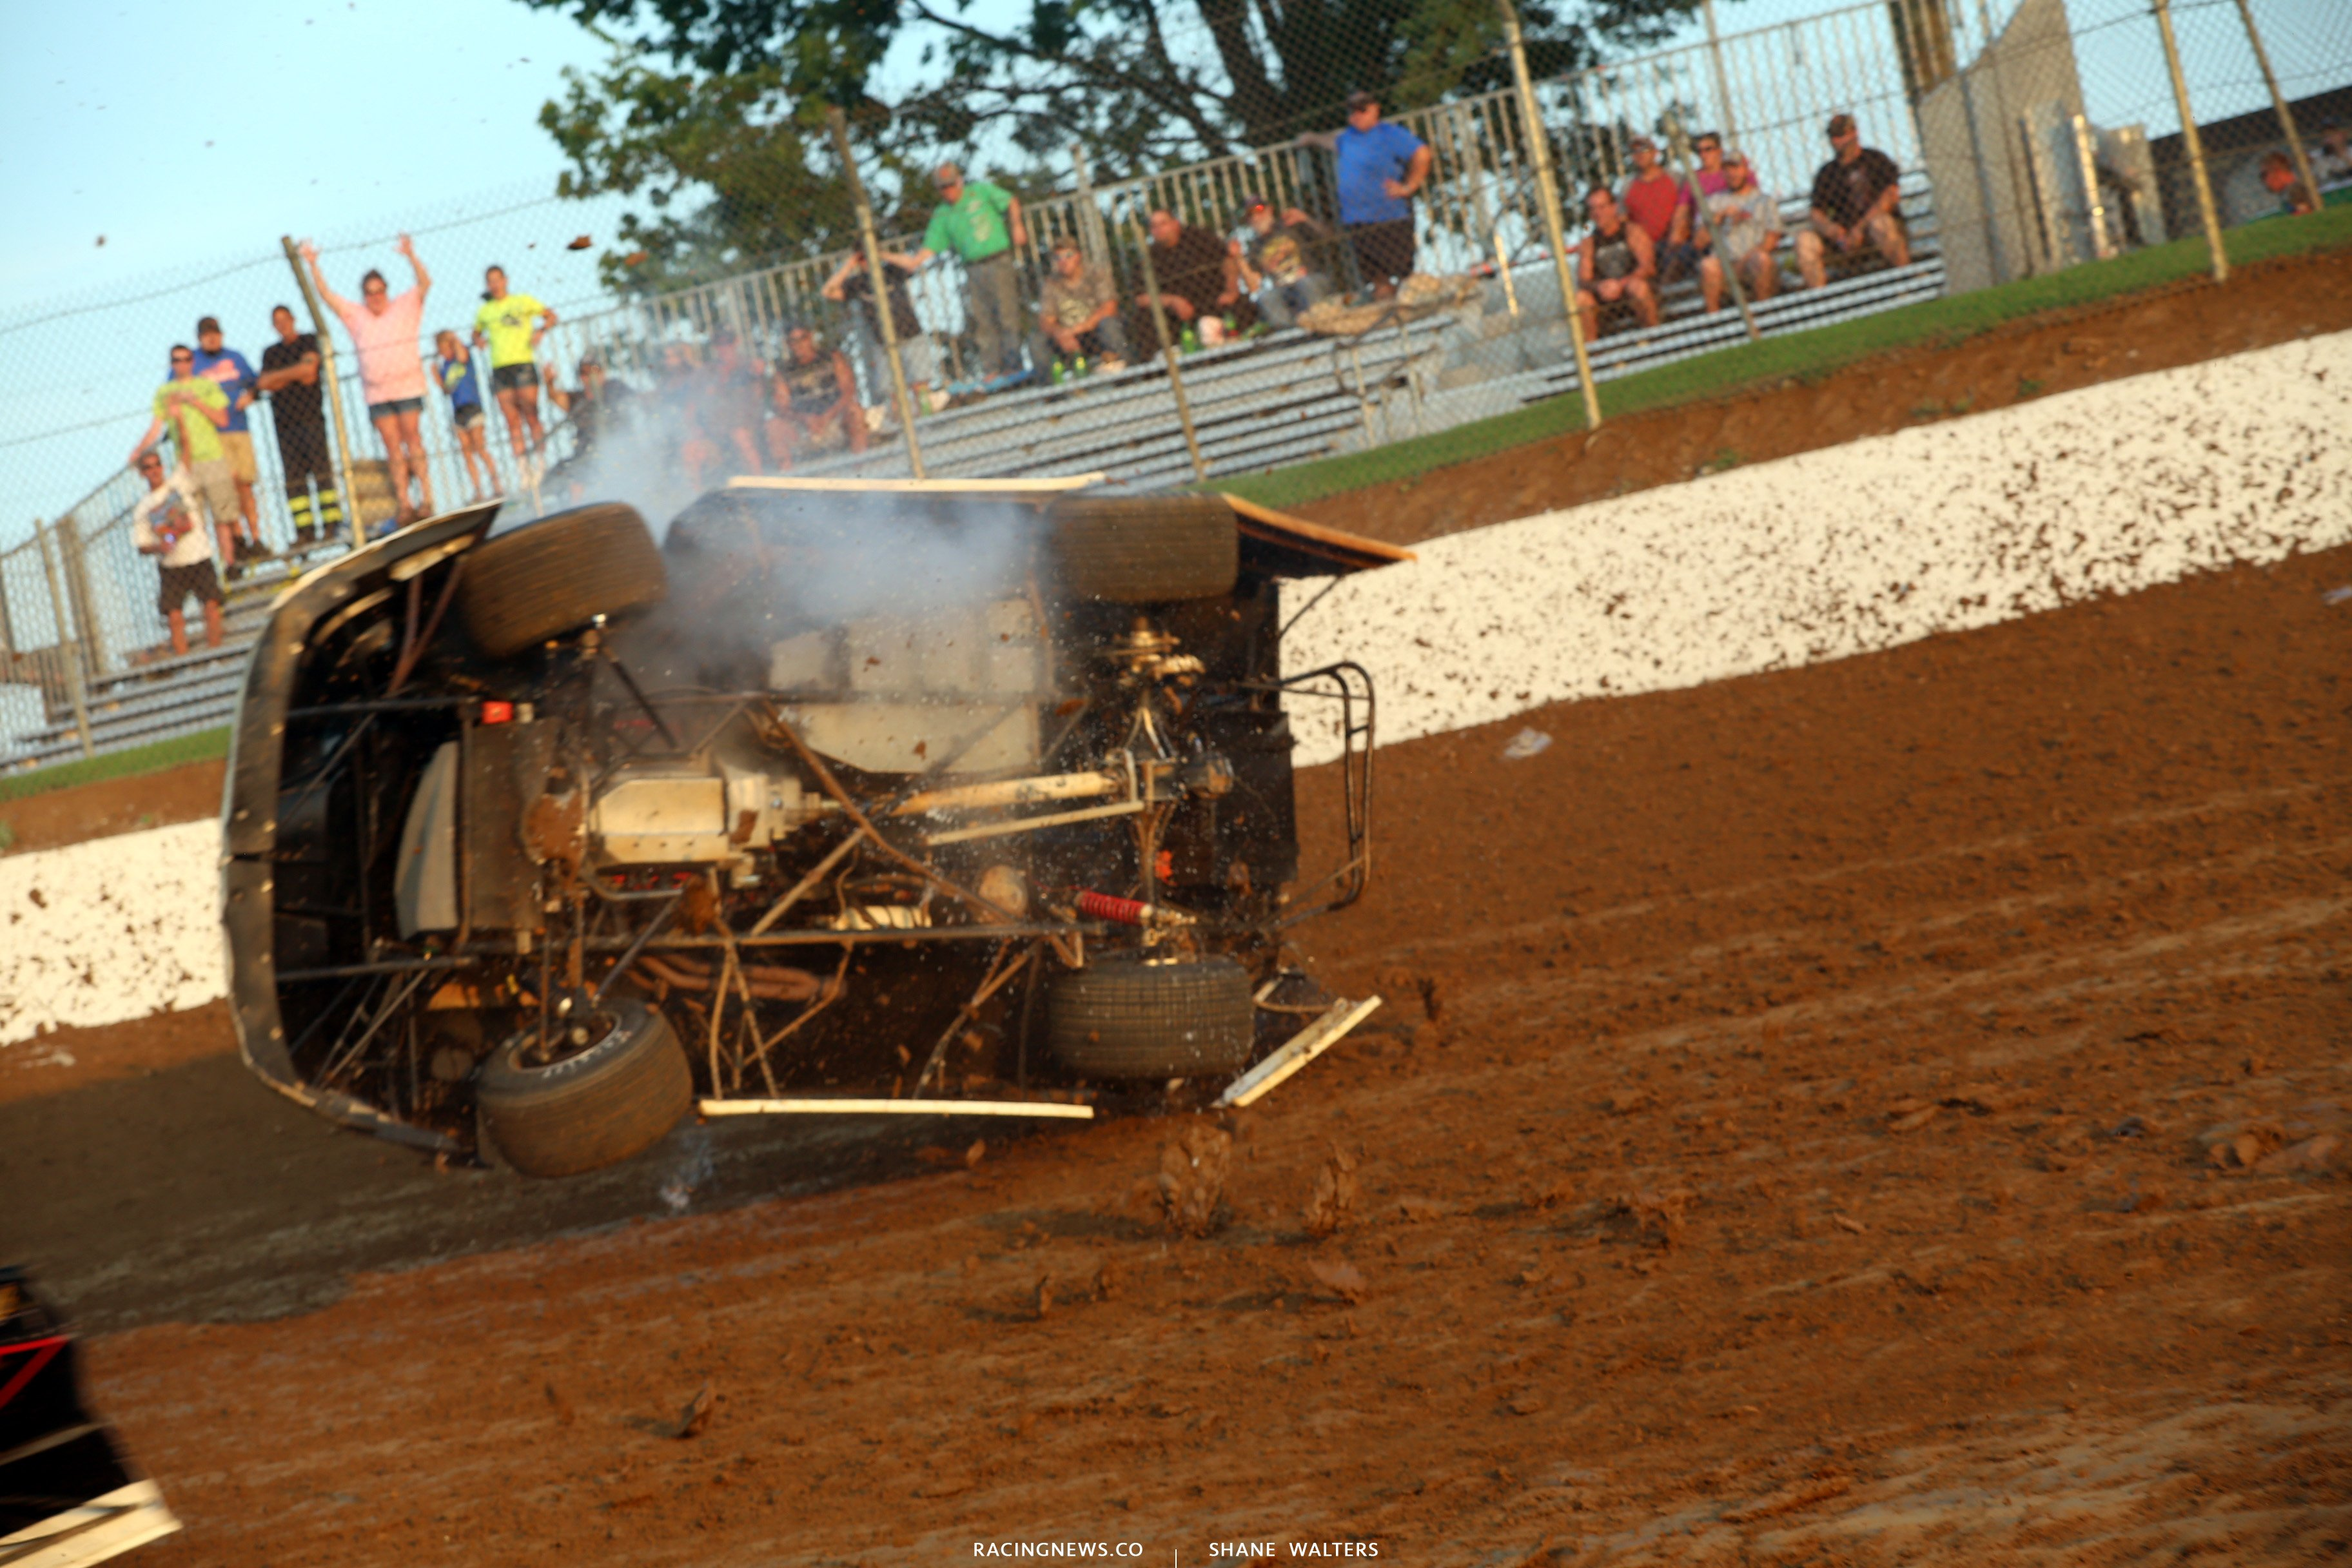 Underneath a dirt late model 4725